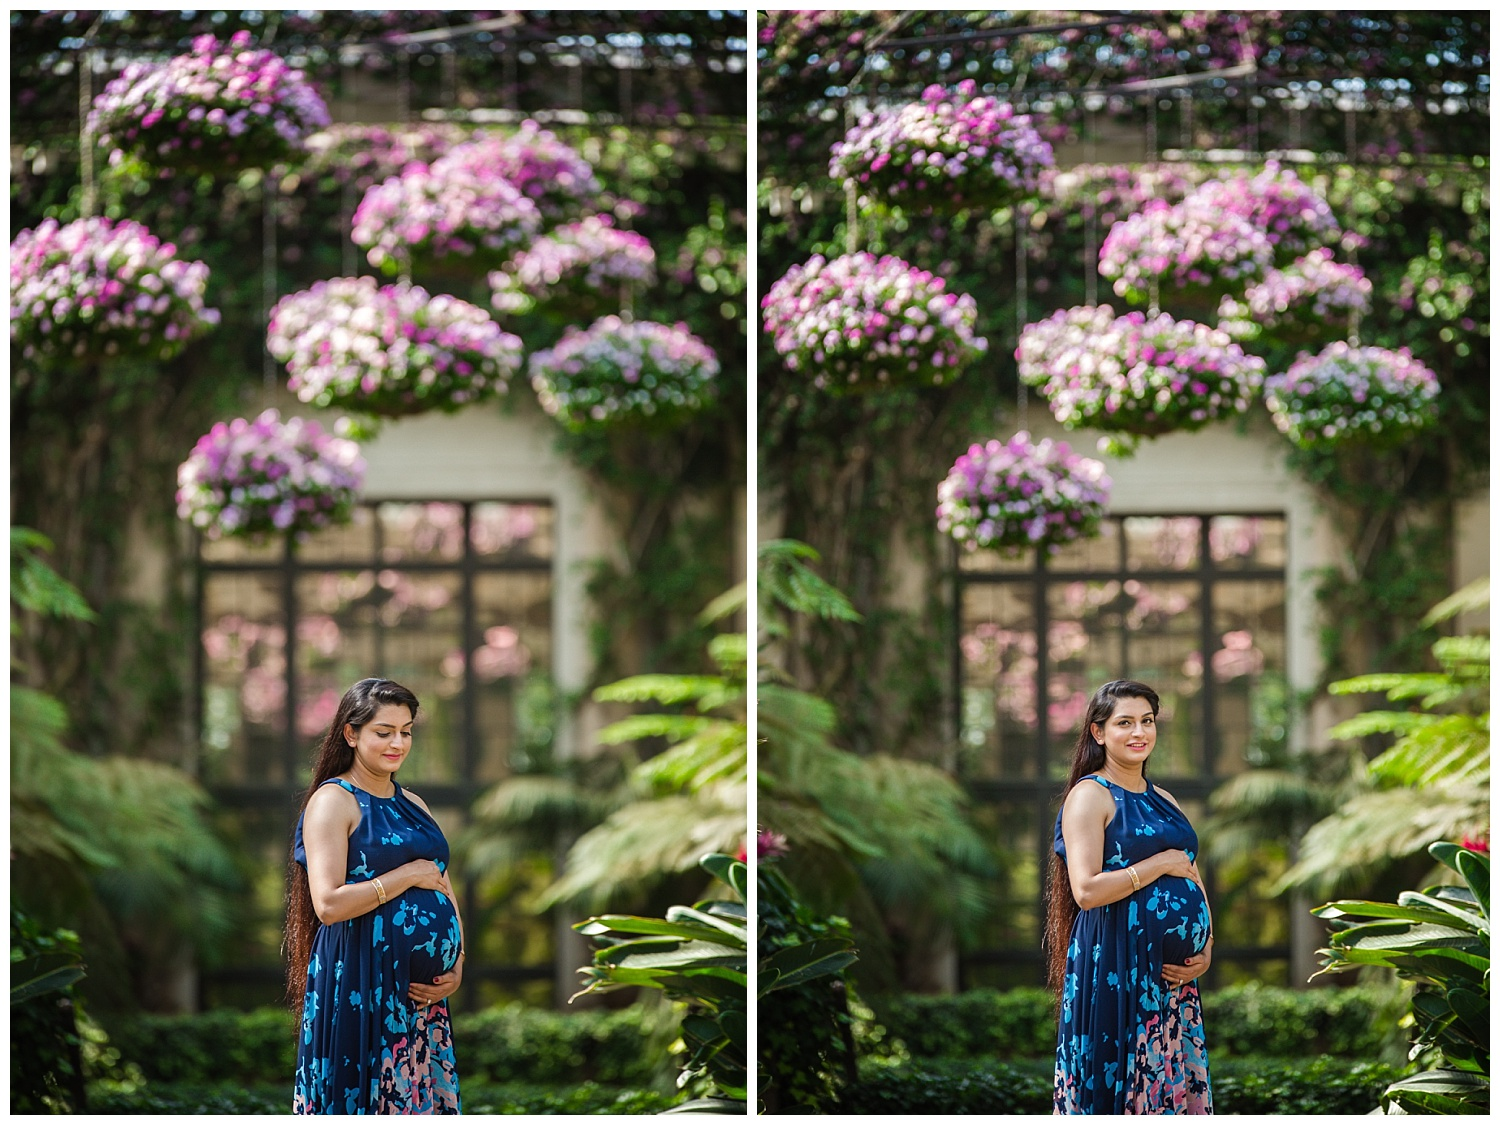 Stunning Indian mom holding her pregnant belly at longwood gardens in Pennsylvania.